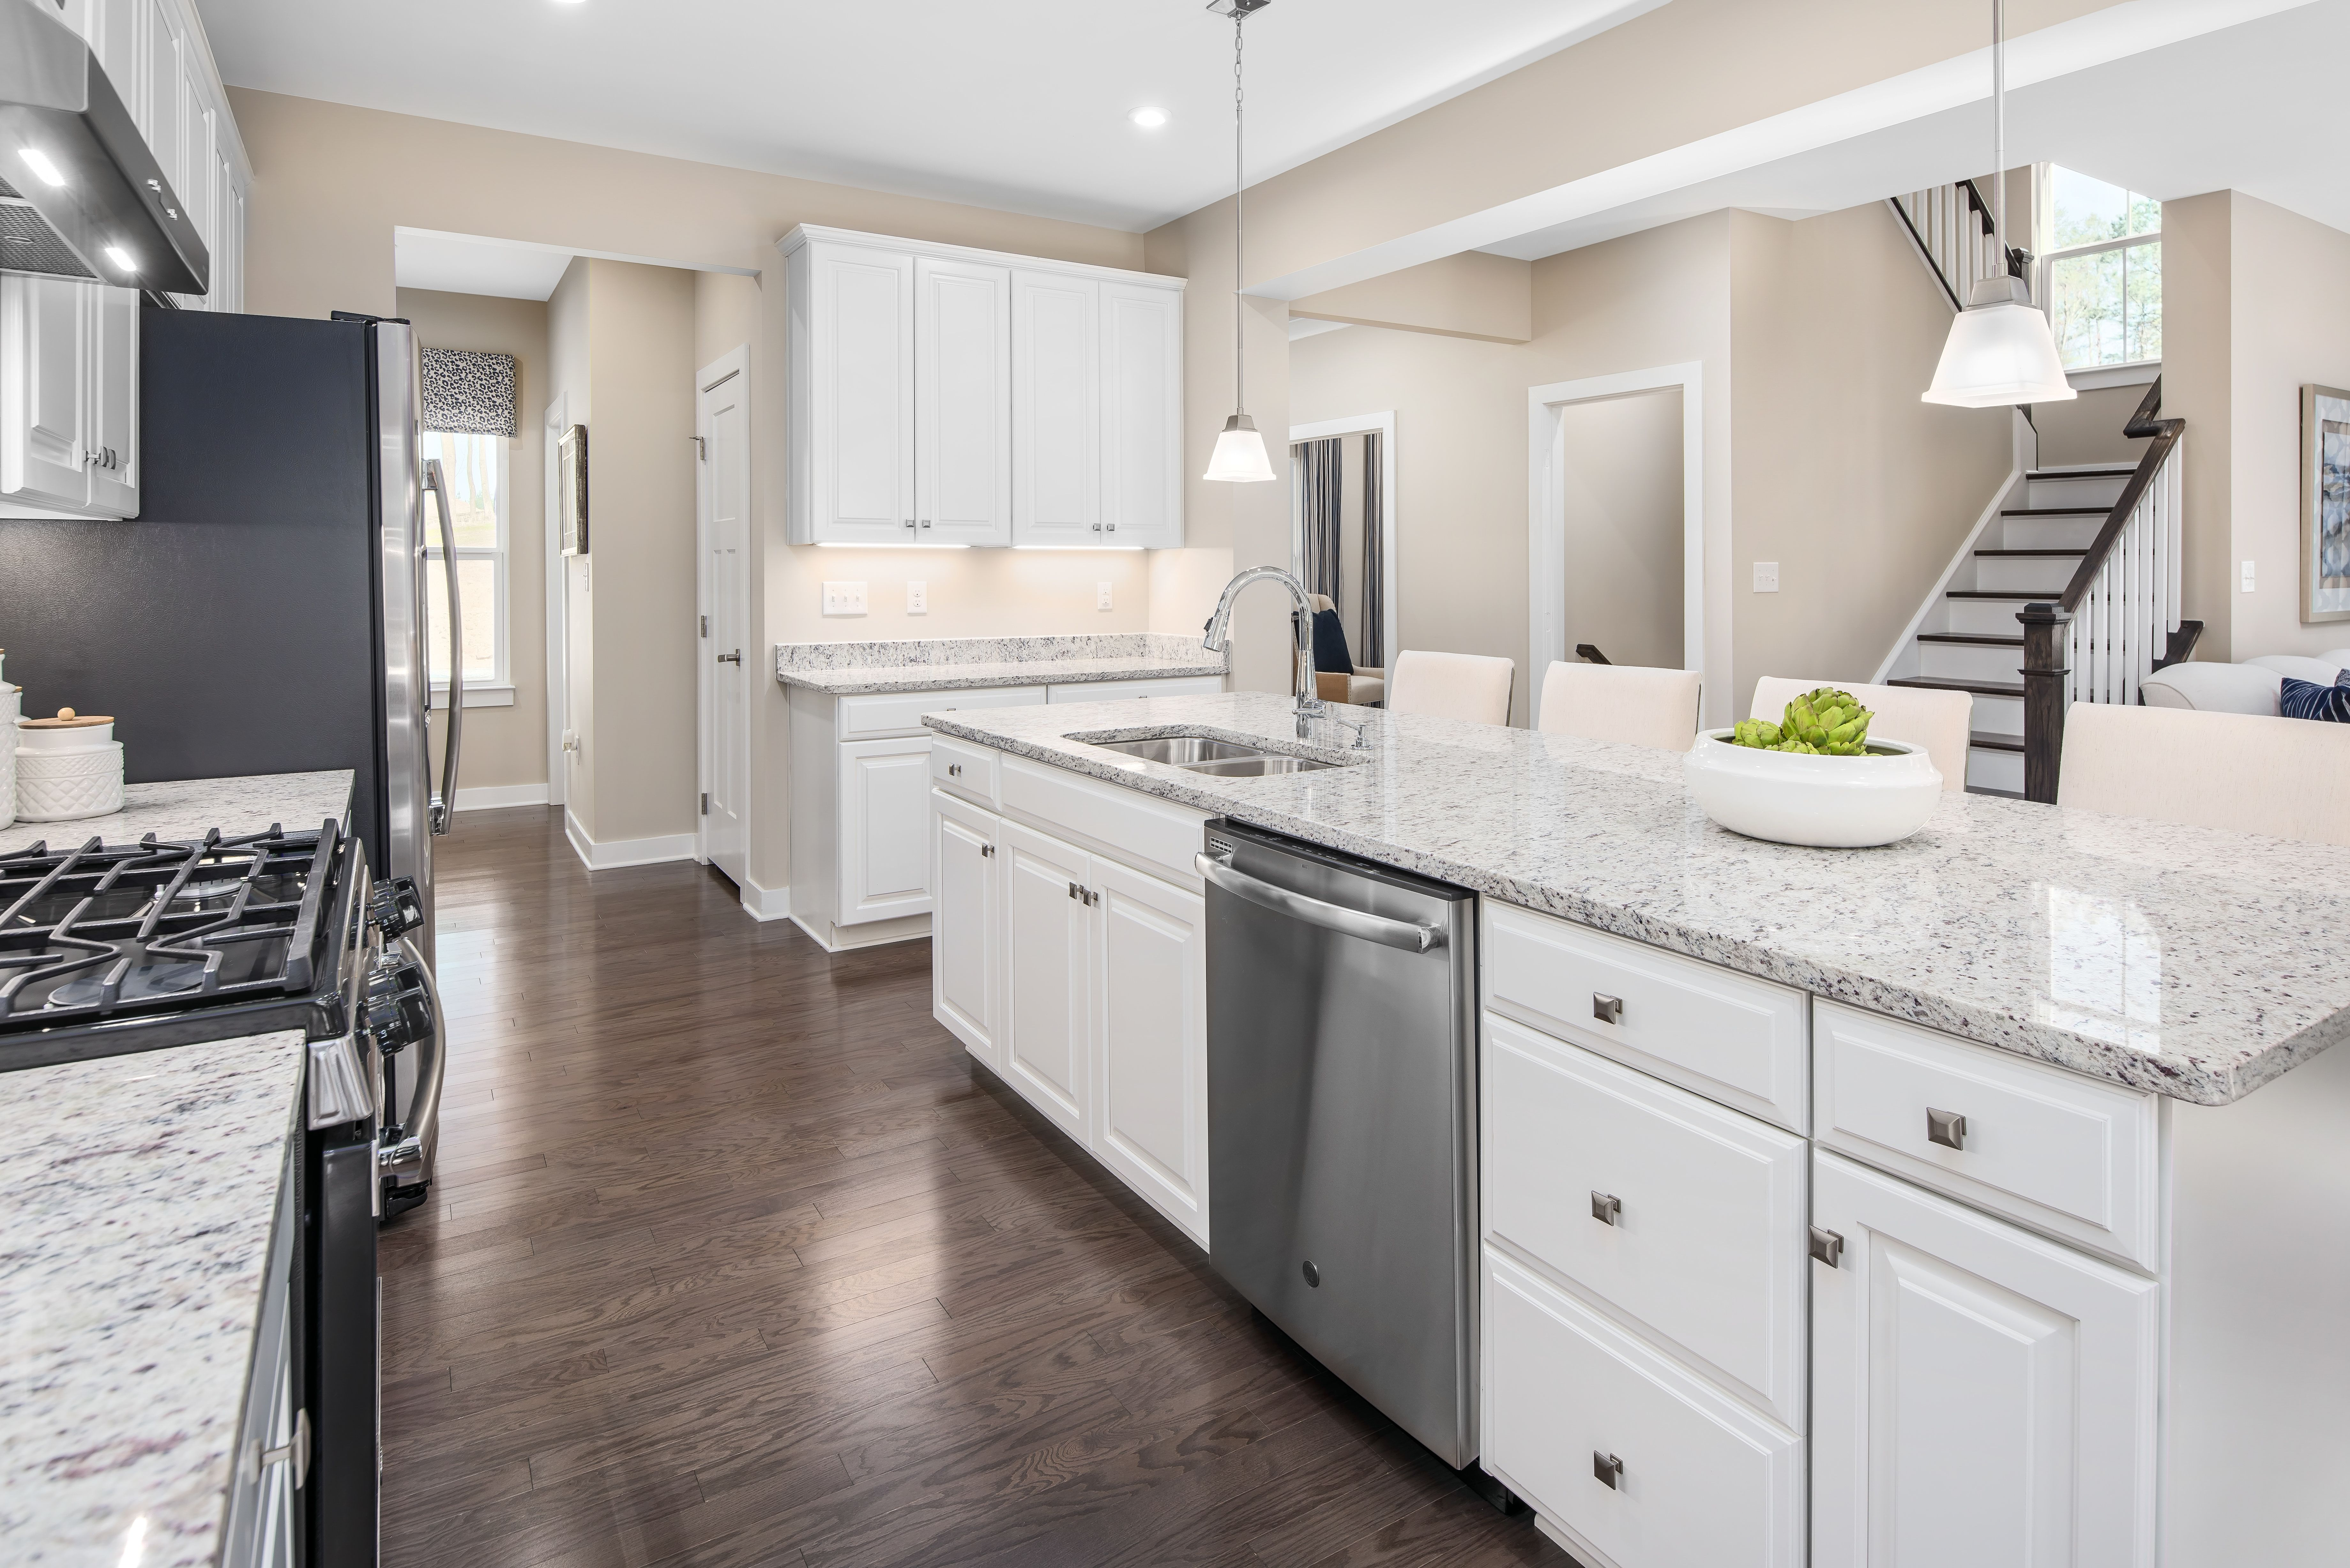 Kitchen featured in the Powell By Ryan Homes in Cleveland, OH